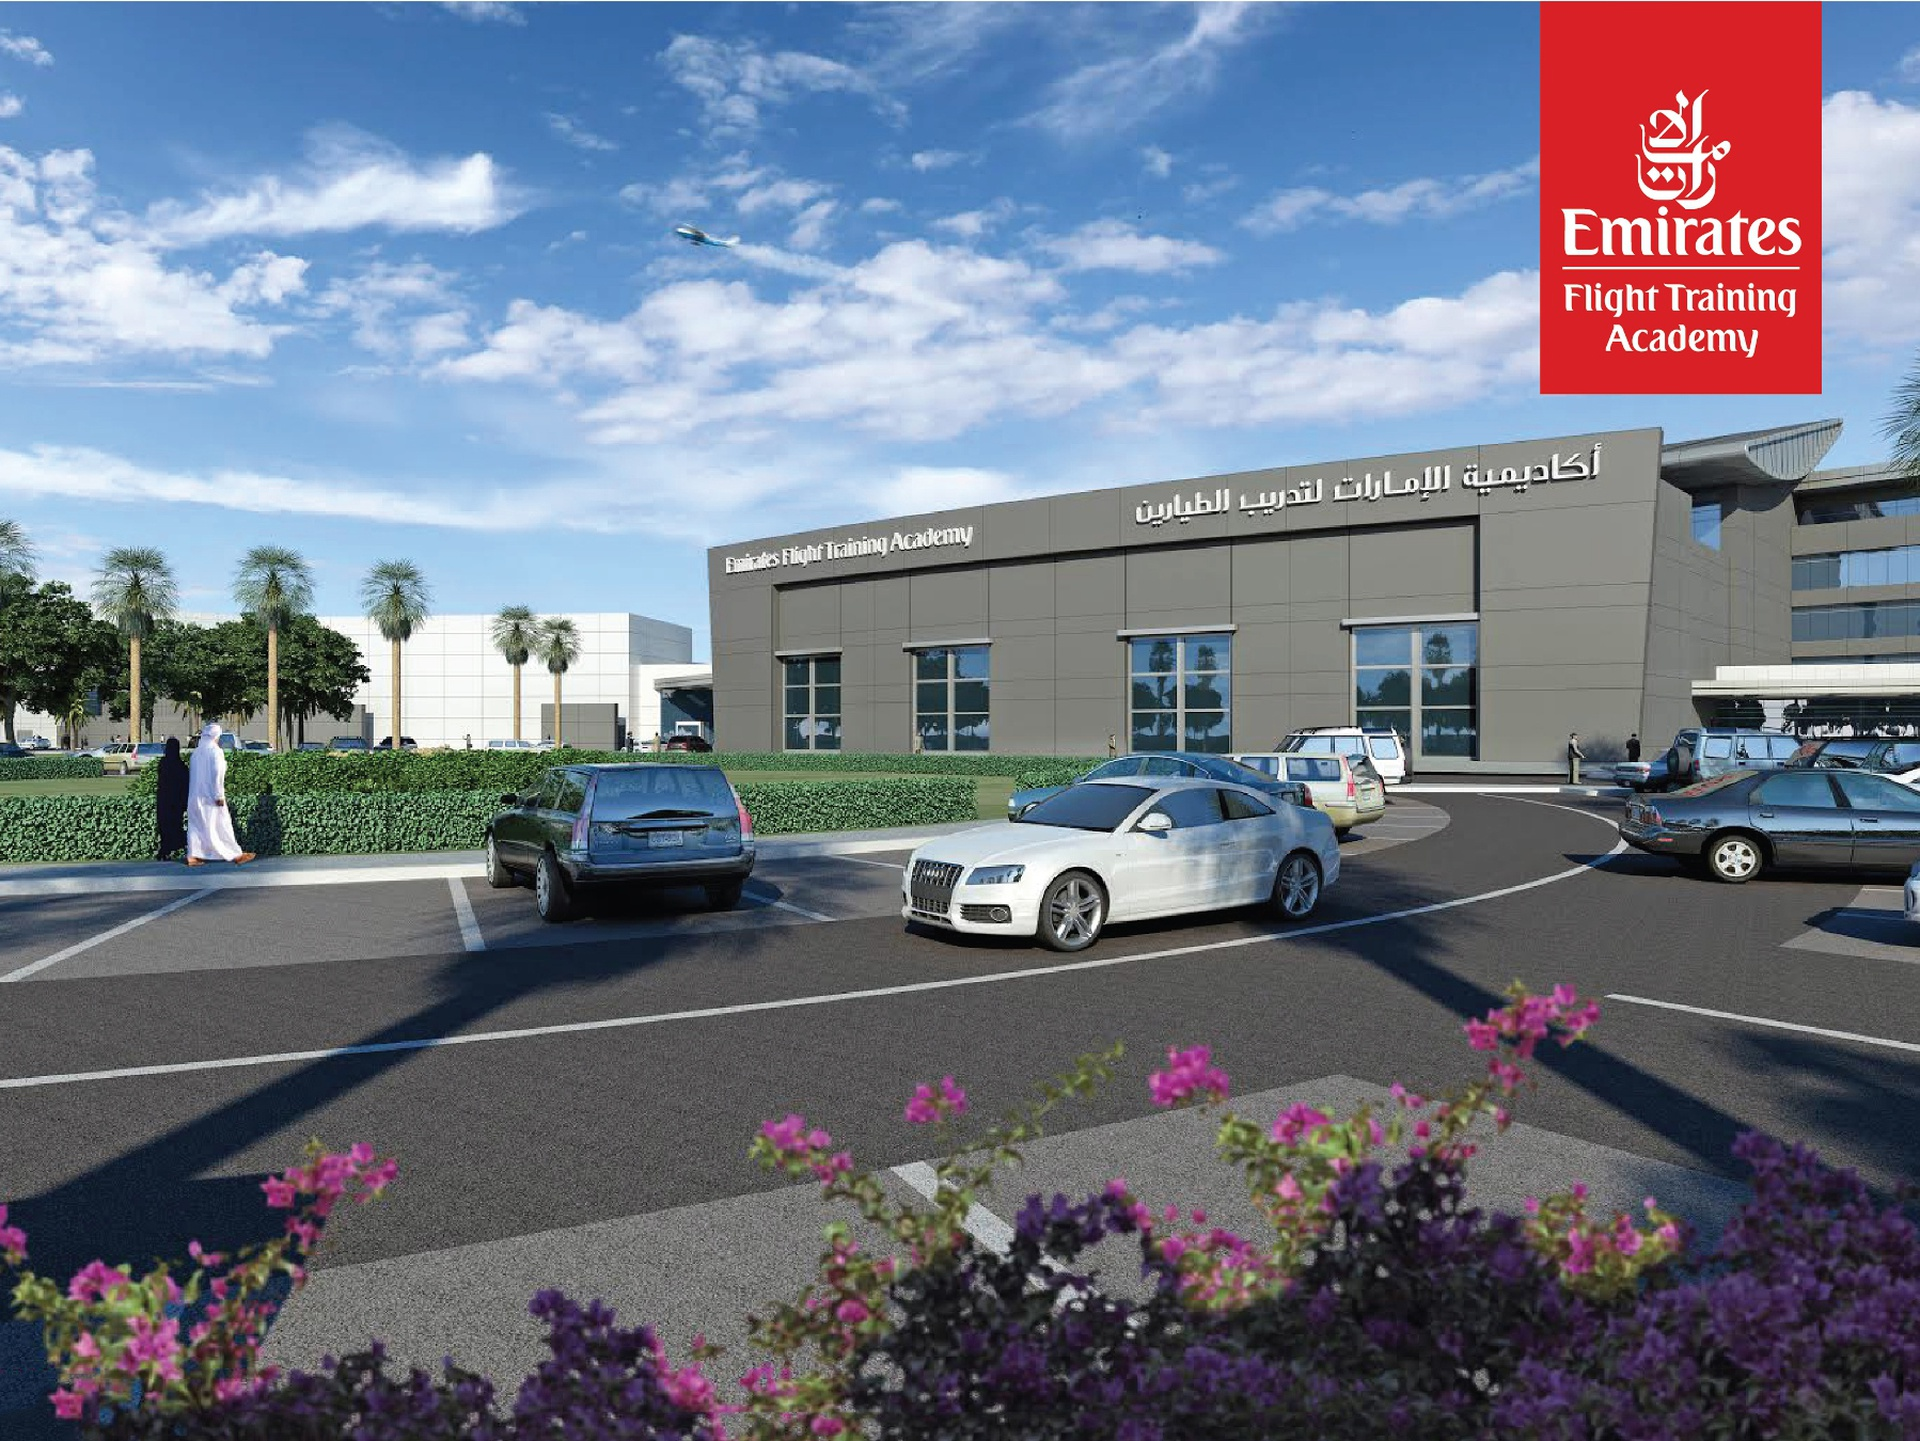 Emirates Flight Training Academy scheduled to open in October 2016 partners with Boeing